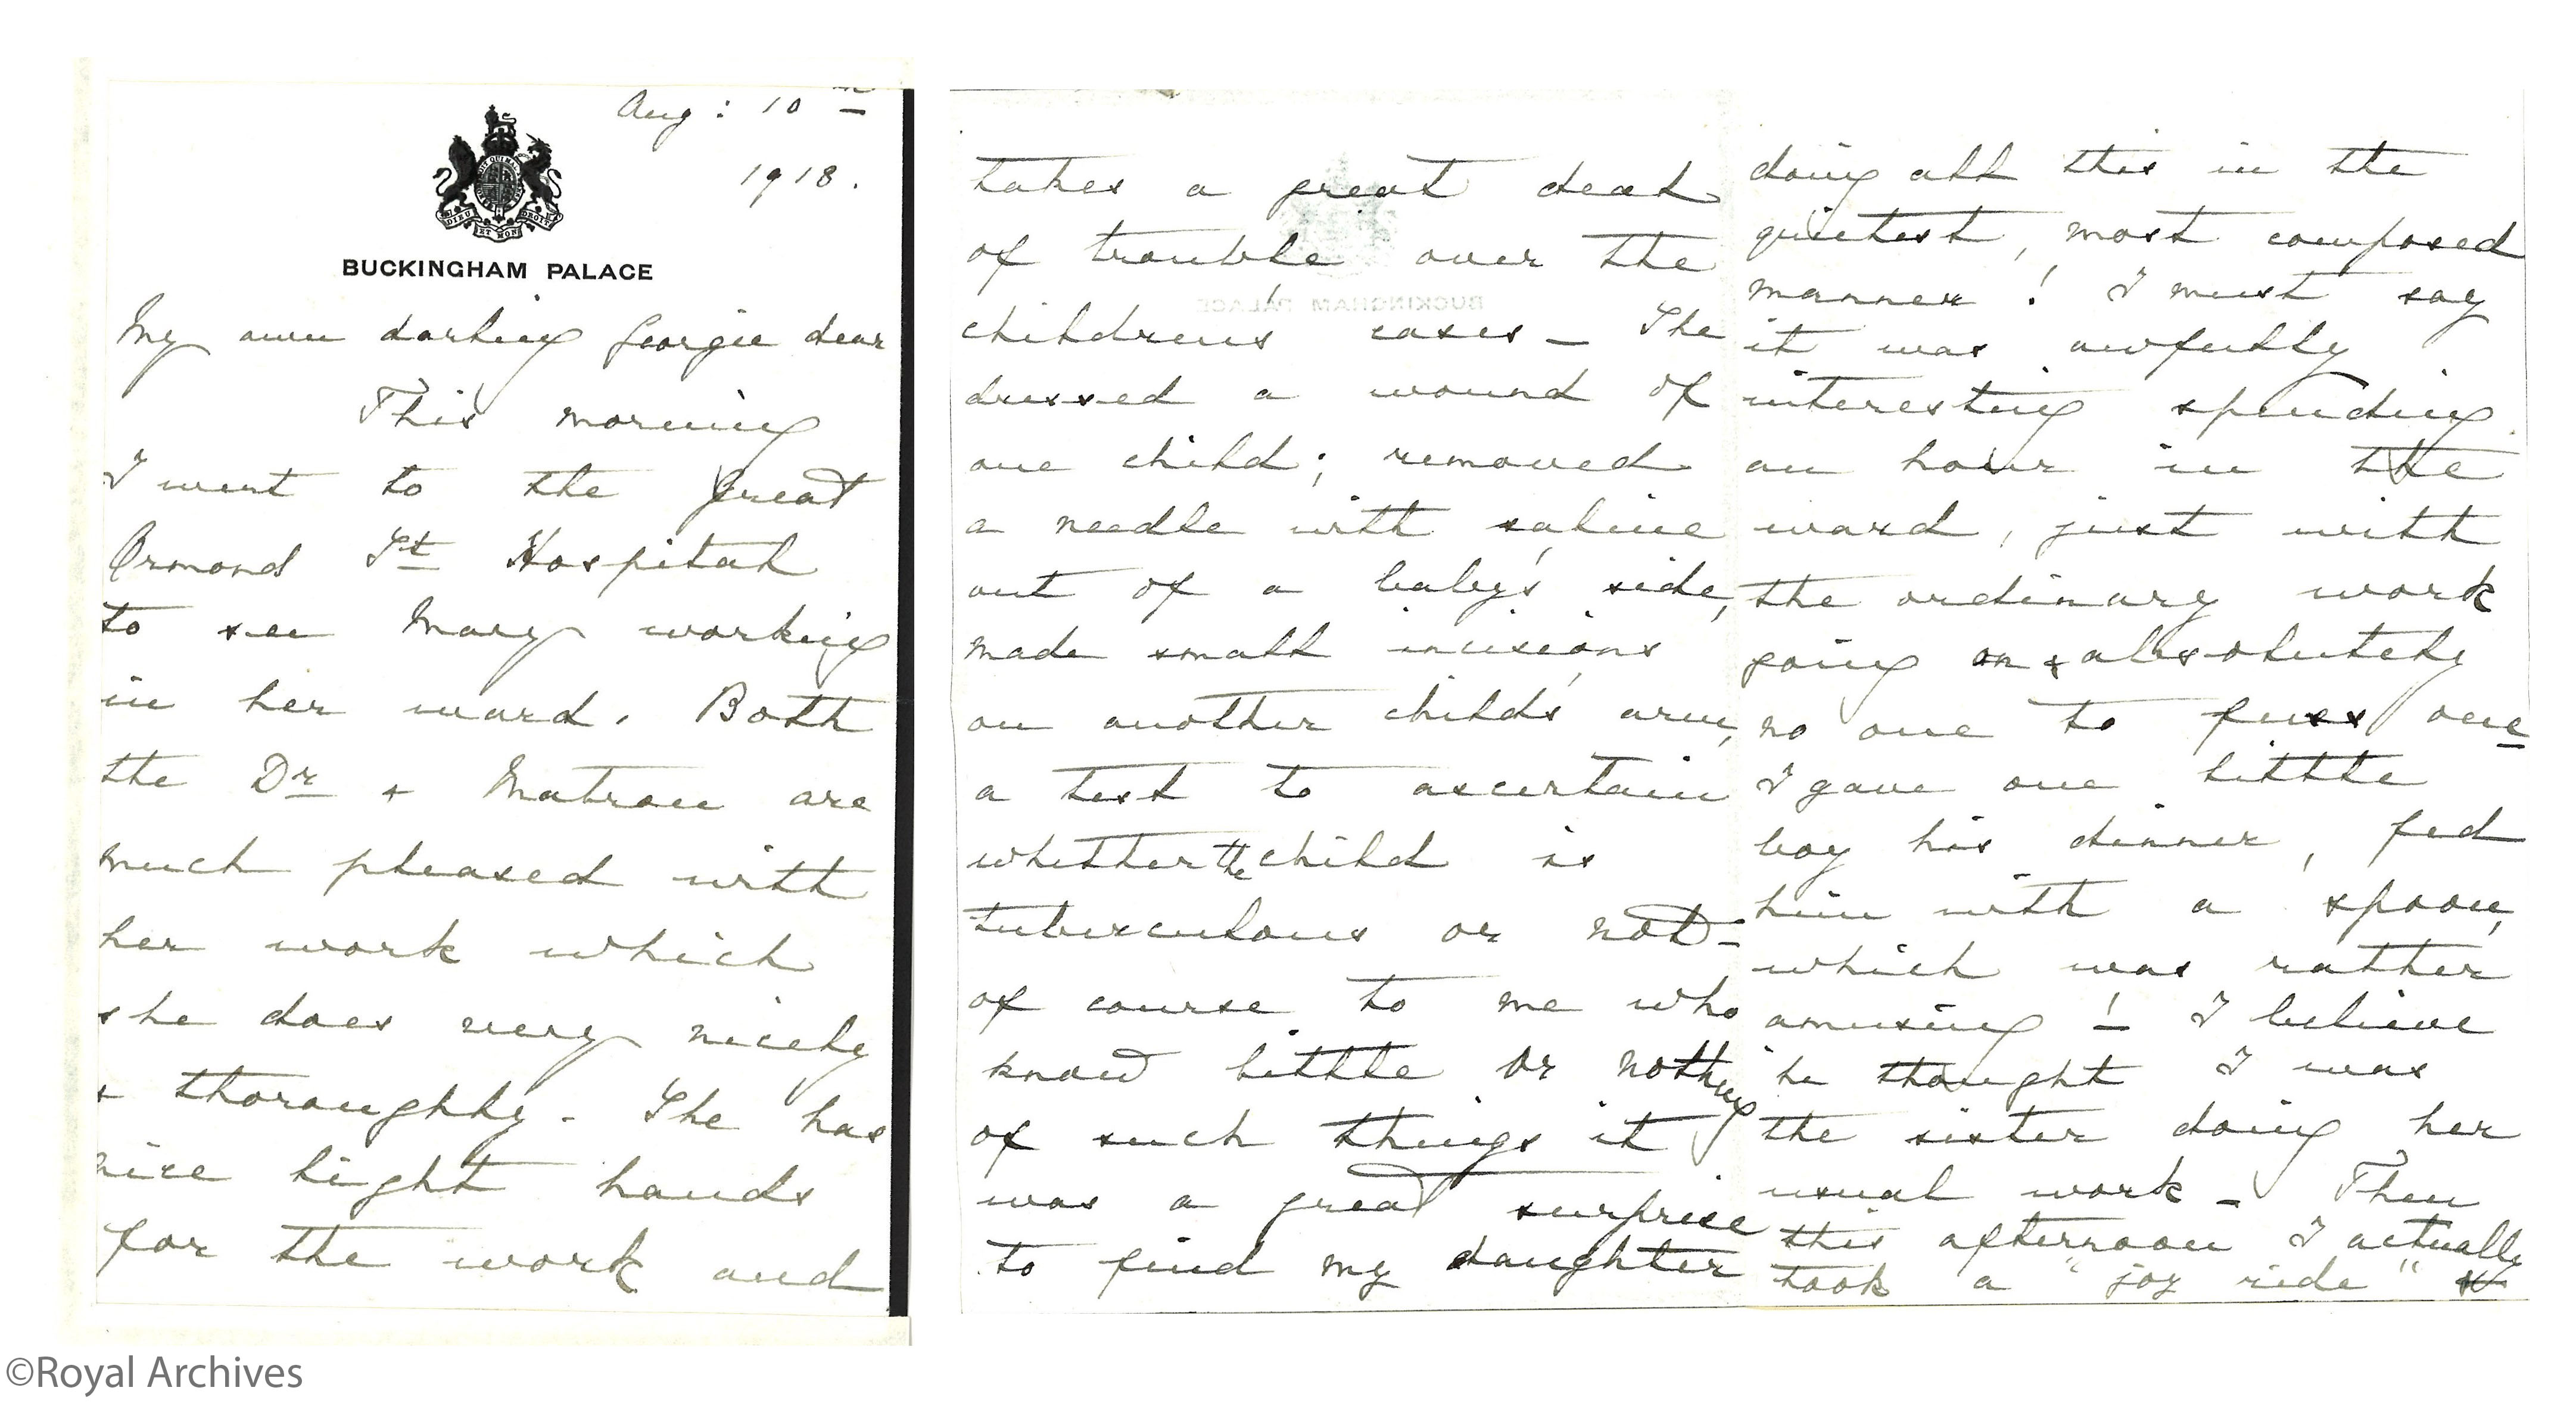 Queen Mary letter